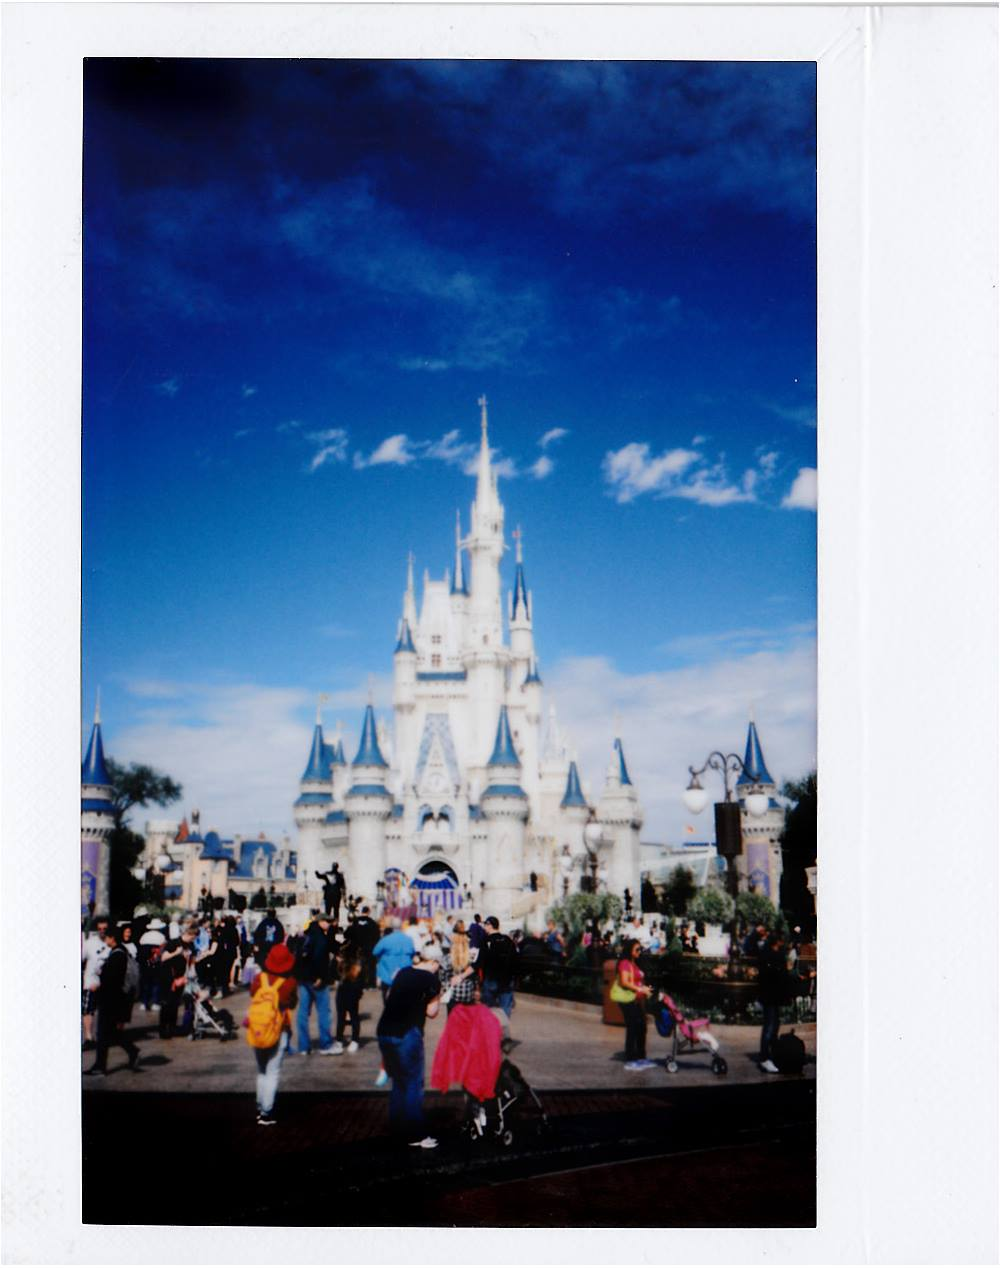 Polaroid of Cinderella's Castle, Magic Kingdom